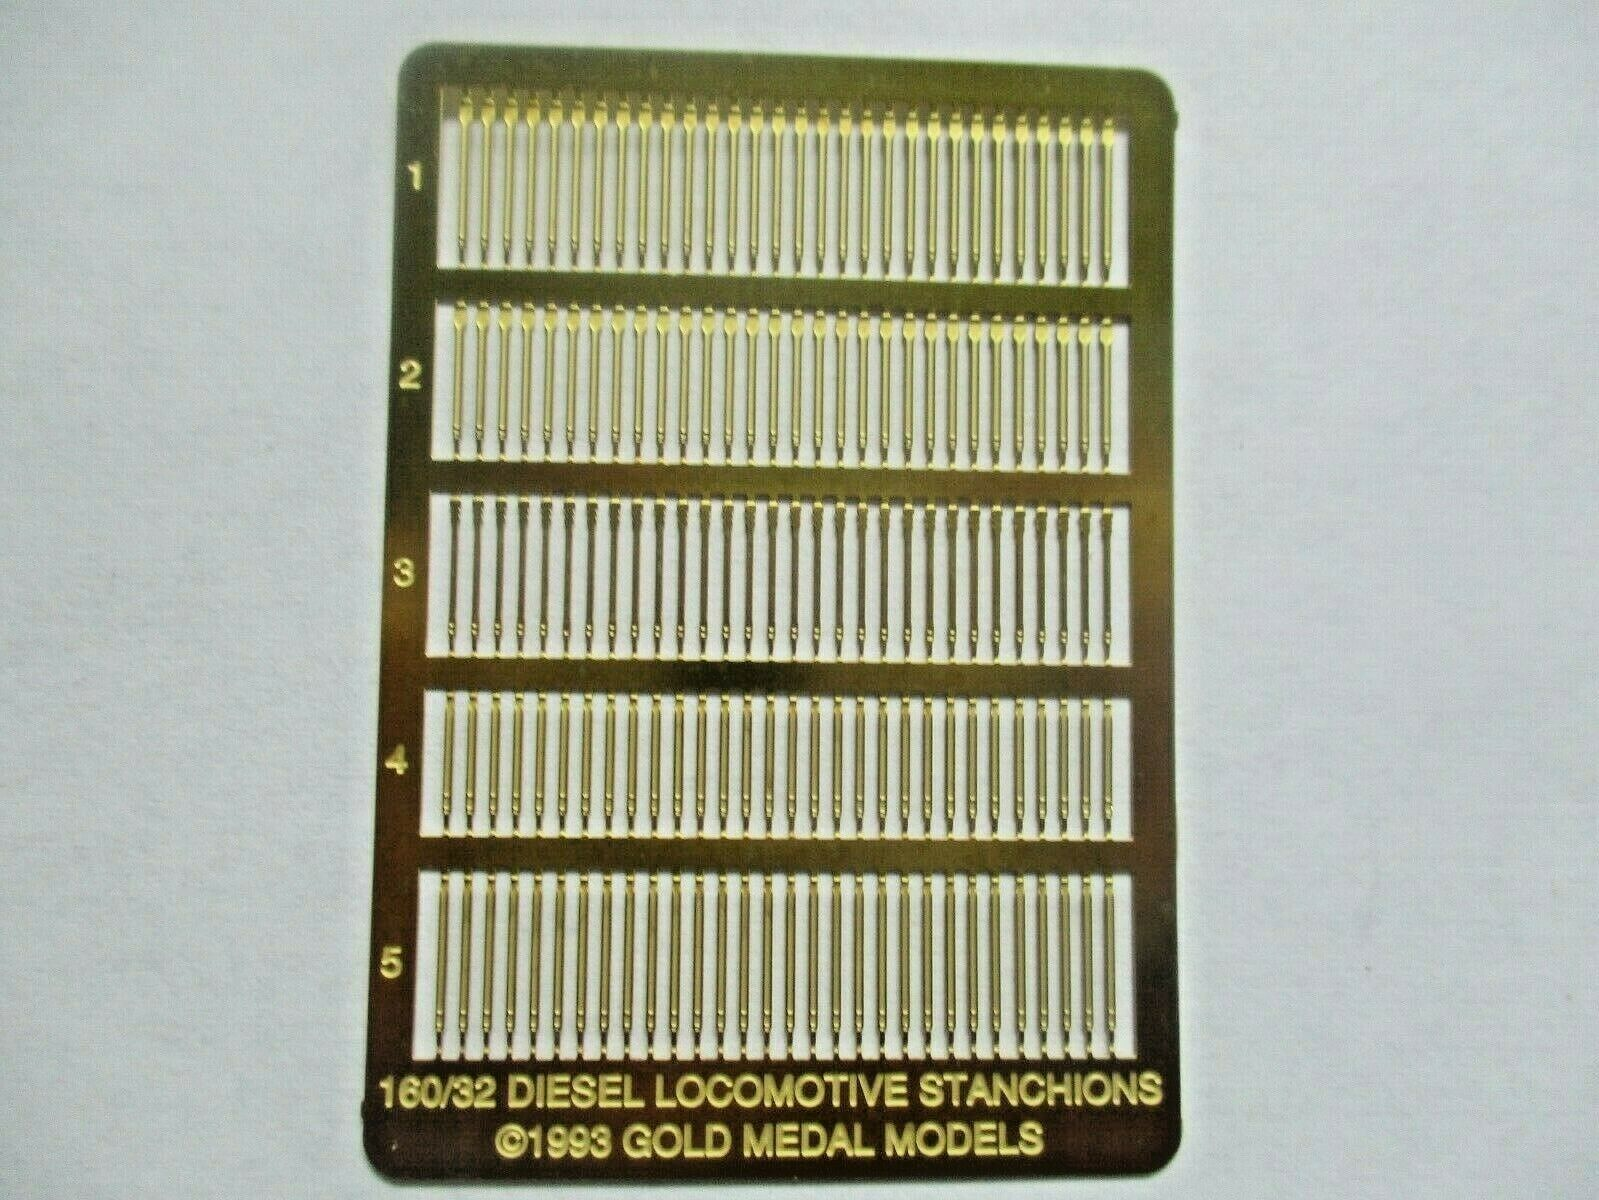 Gold Medal Models # 160-32 Diesel Loco Stanchions  N-Scale